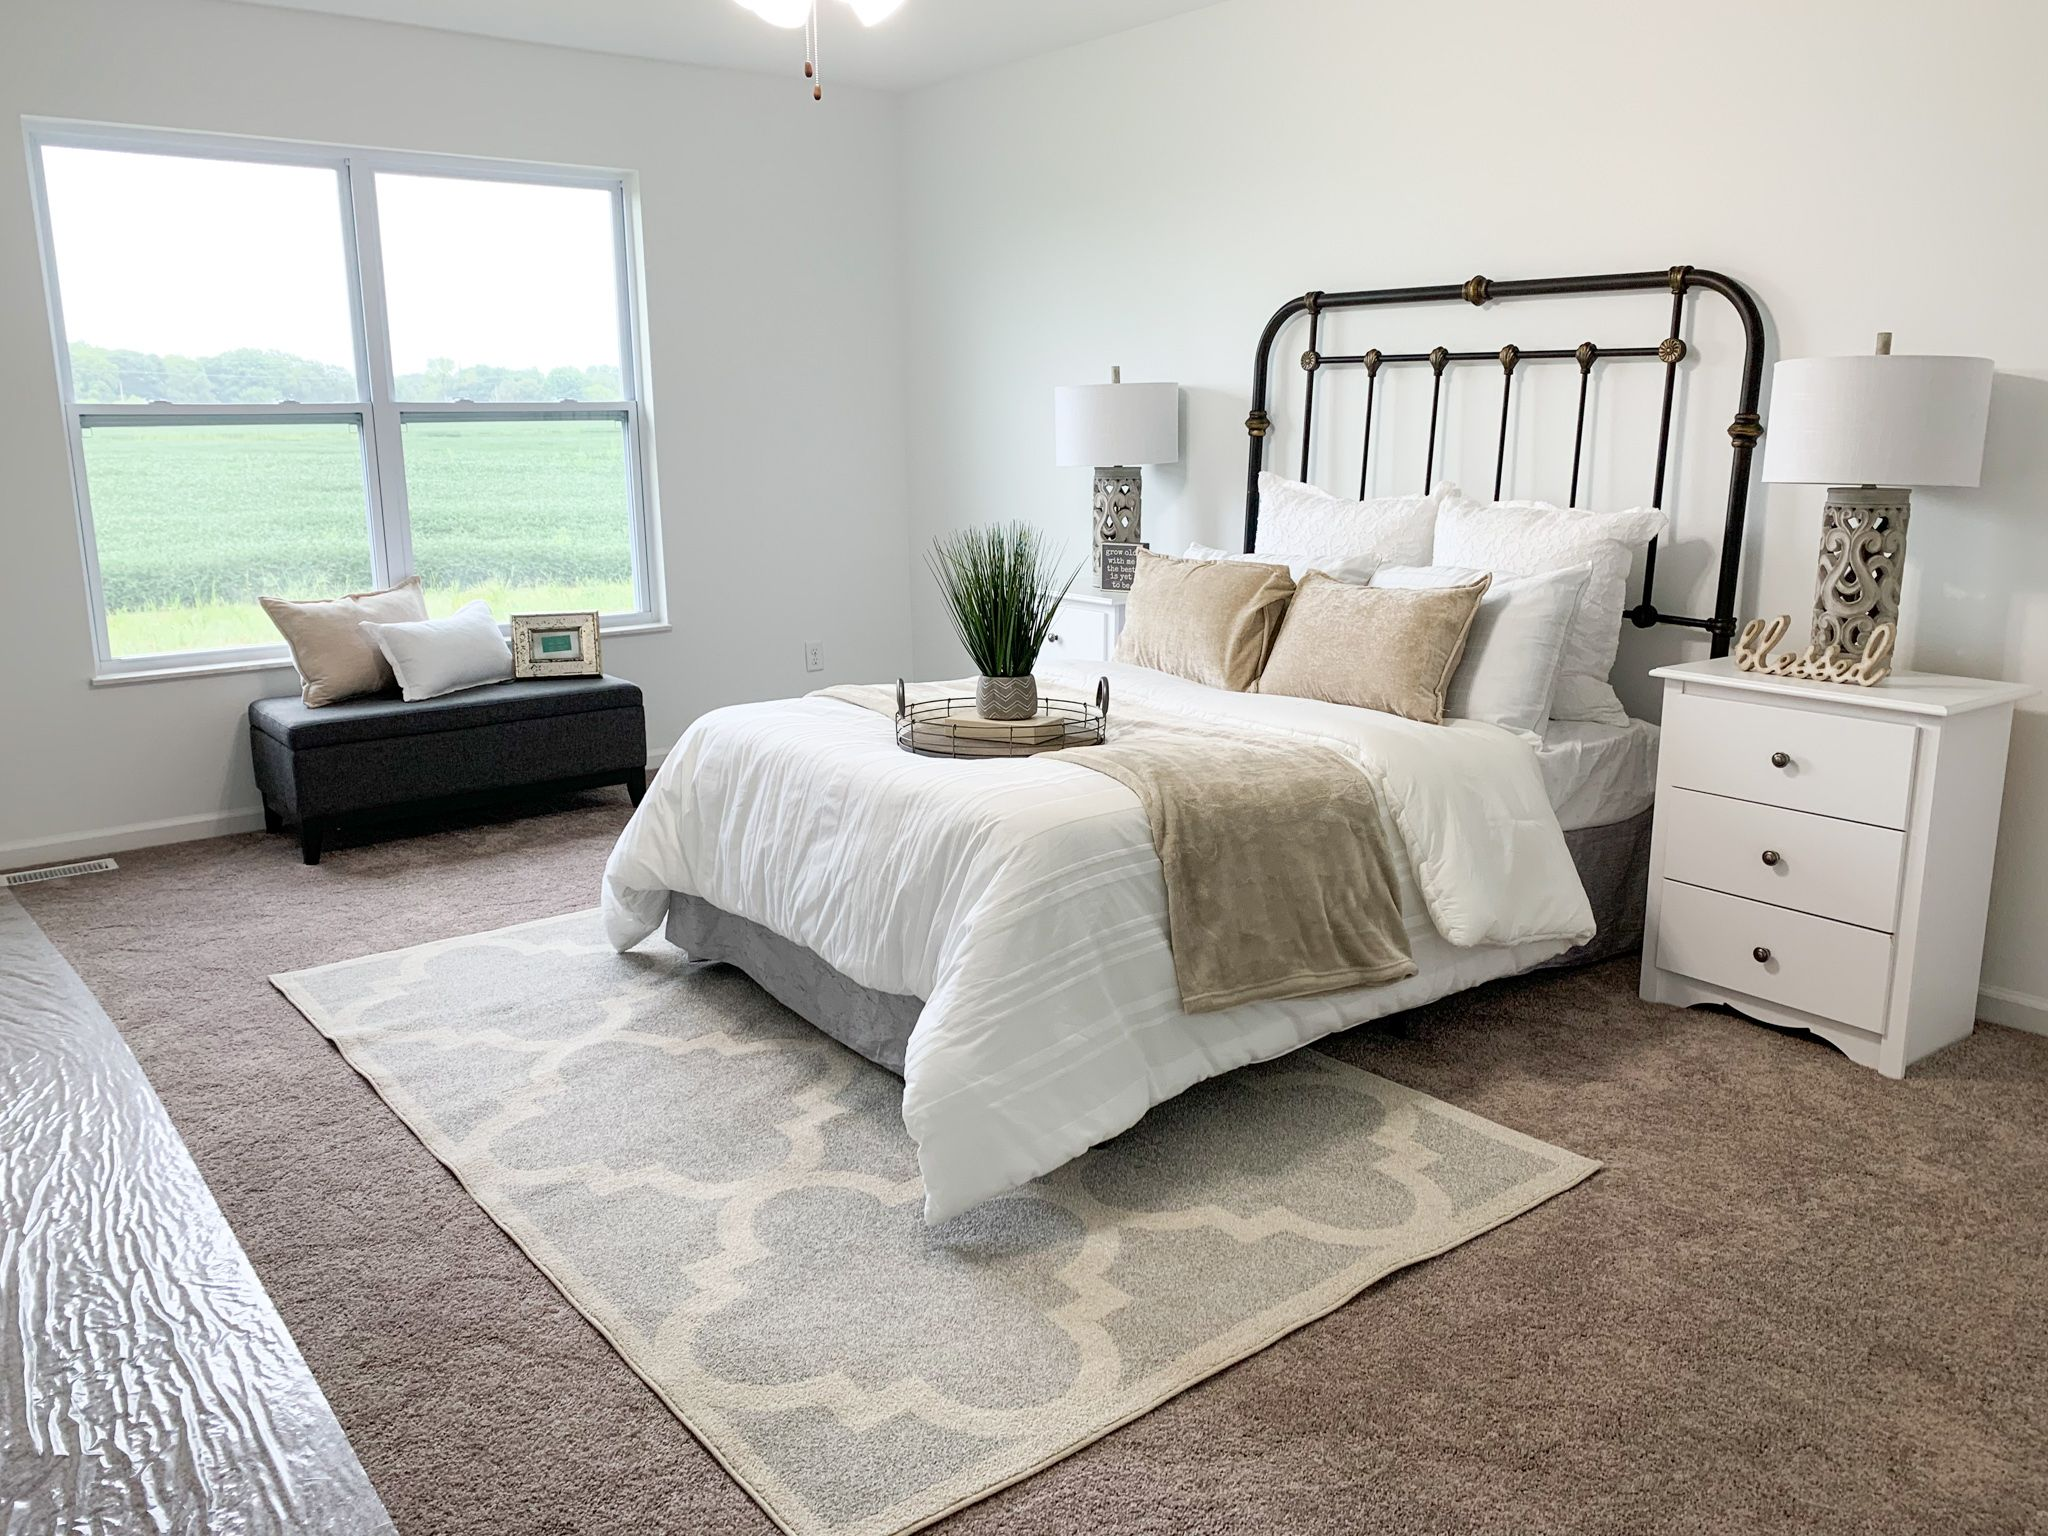 Bedroom featured in the Alexandria By C.A. Jones, Inc.  in St. Louis, IL